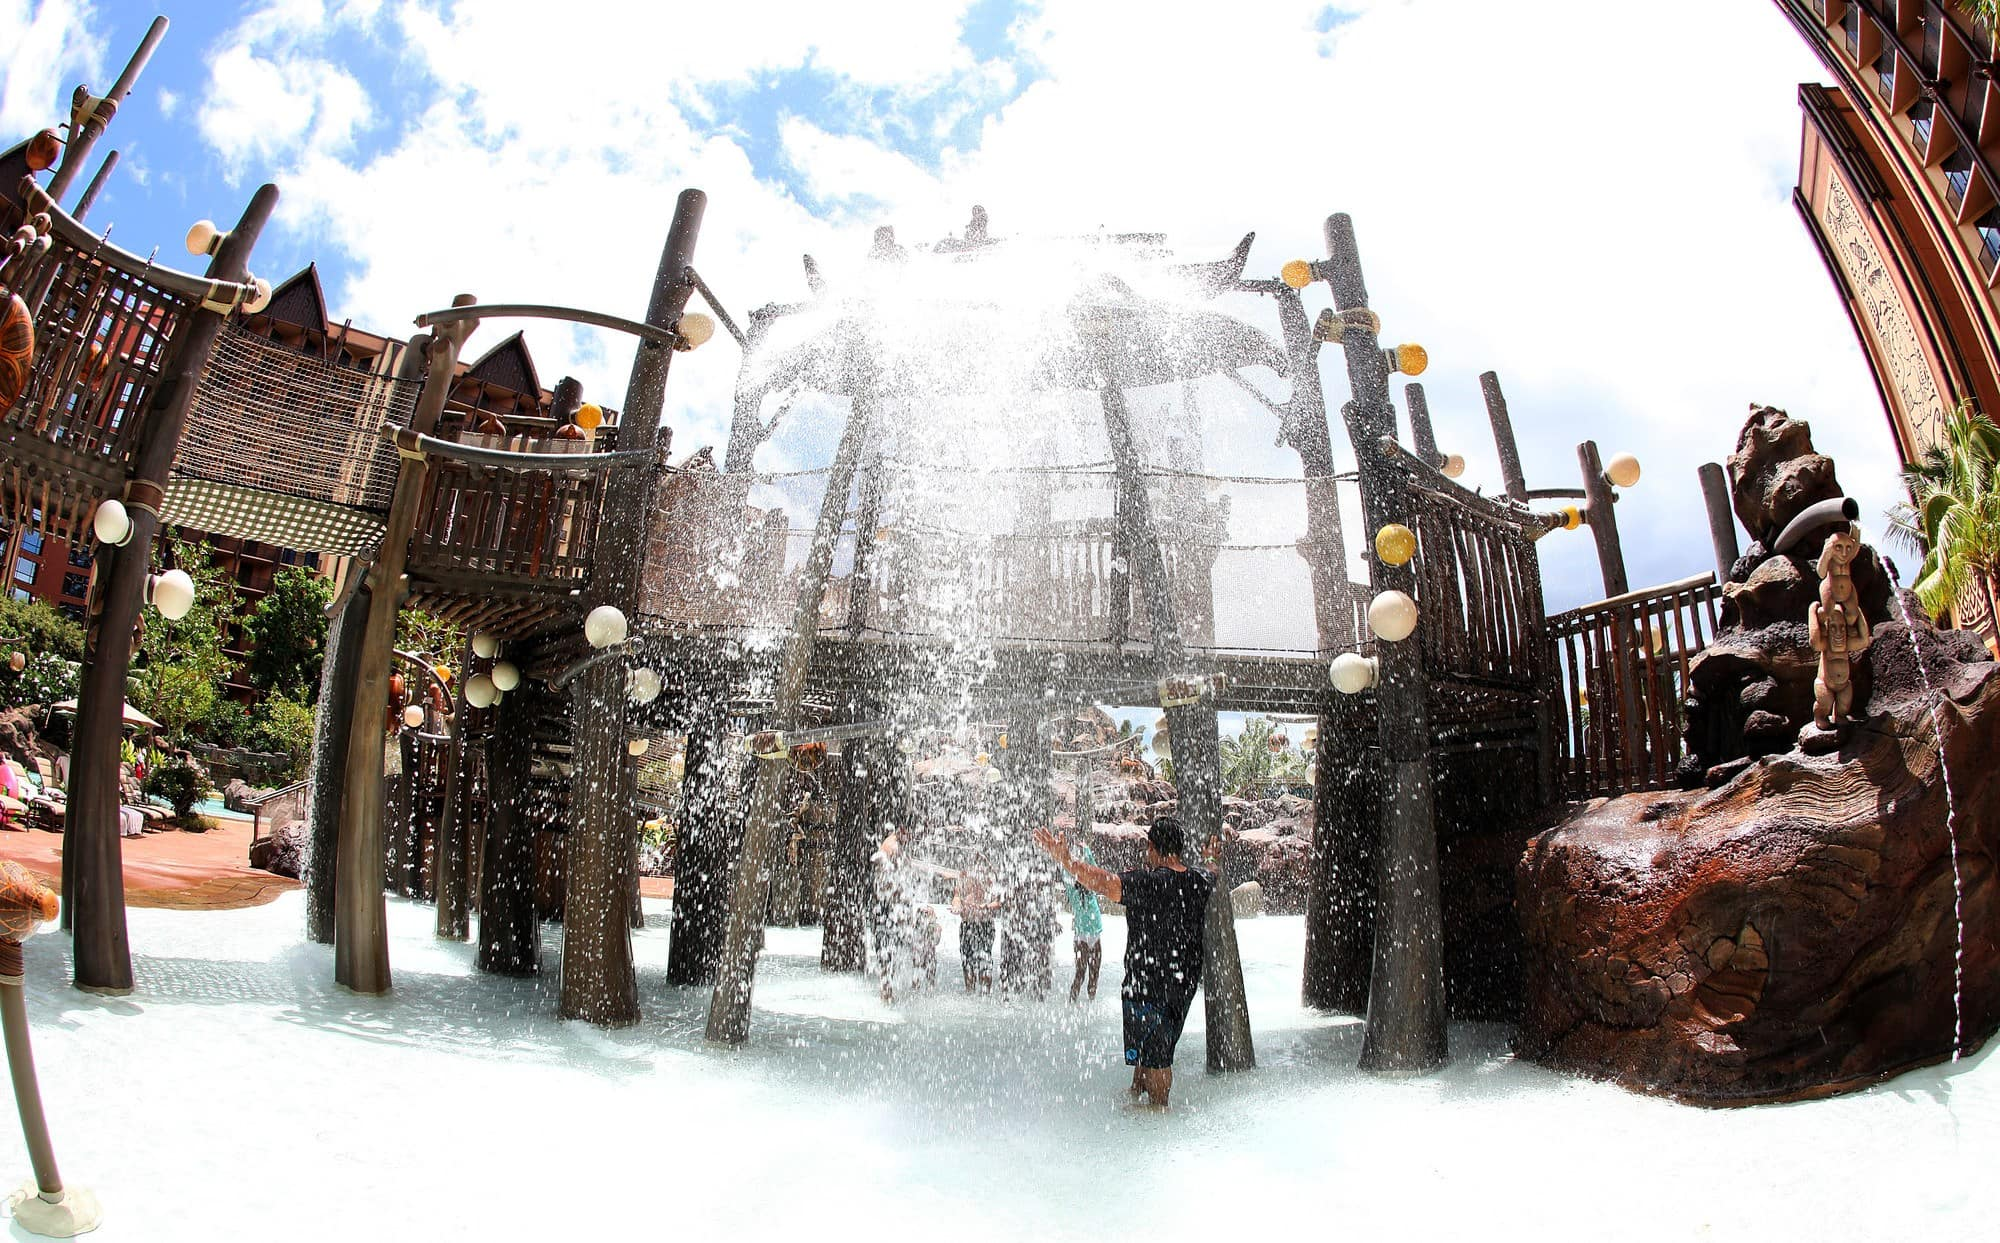 Menehune Bridge is a joyous water play structure at Disney Aulani